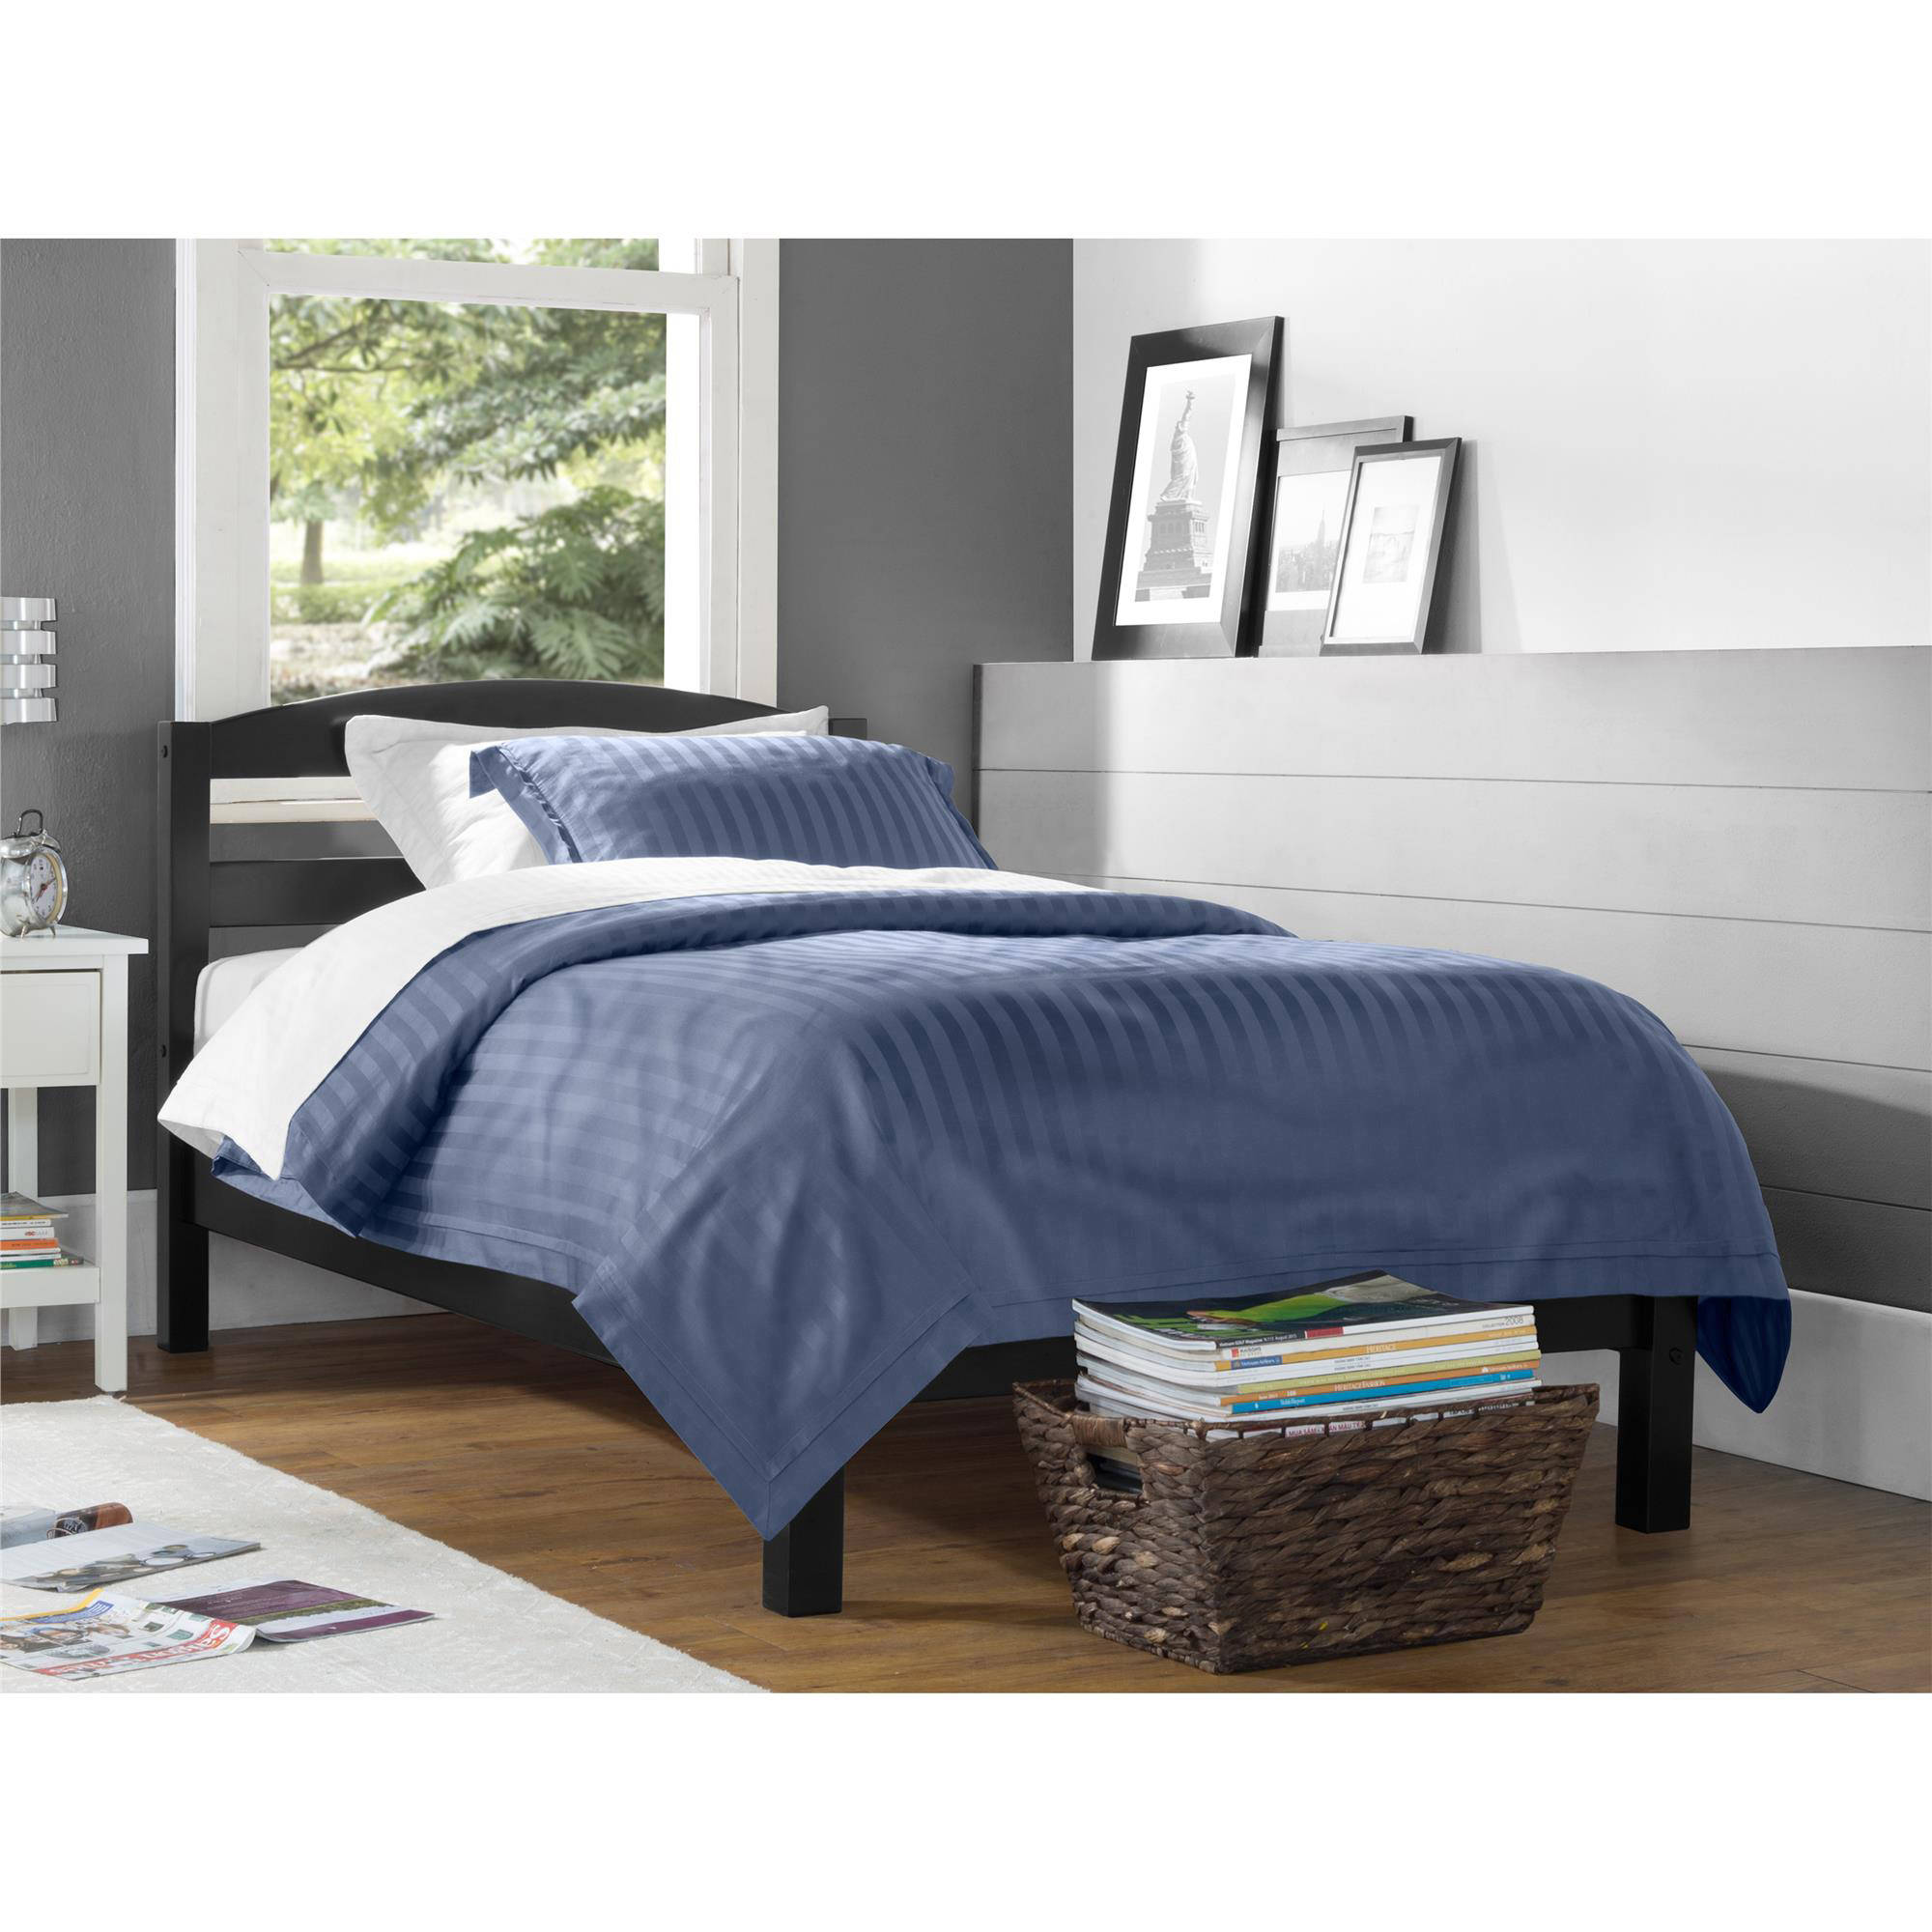 Mainstays Twin Bed, Multiple Colors